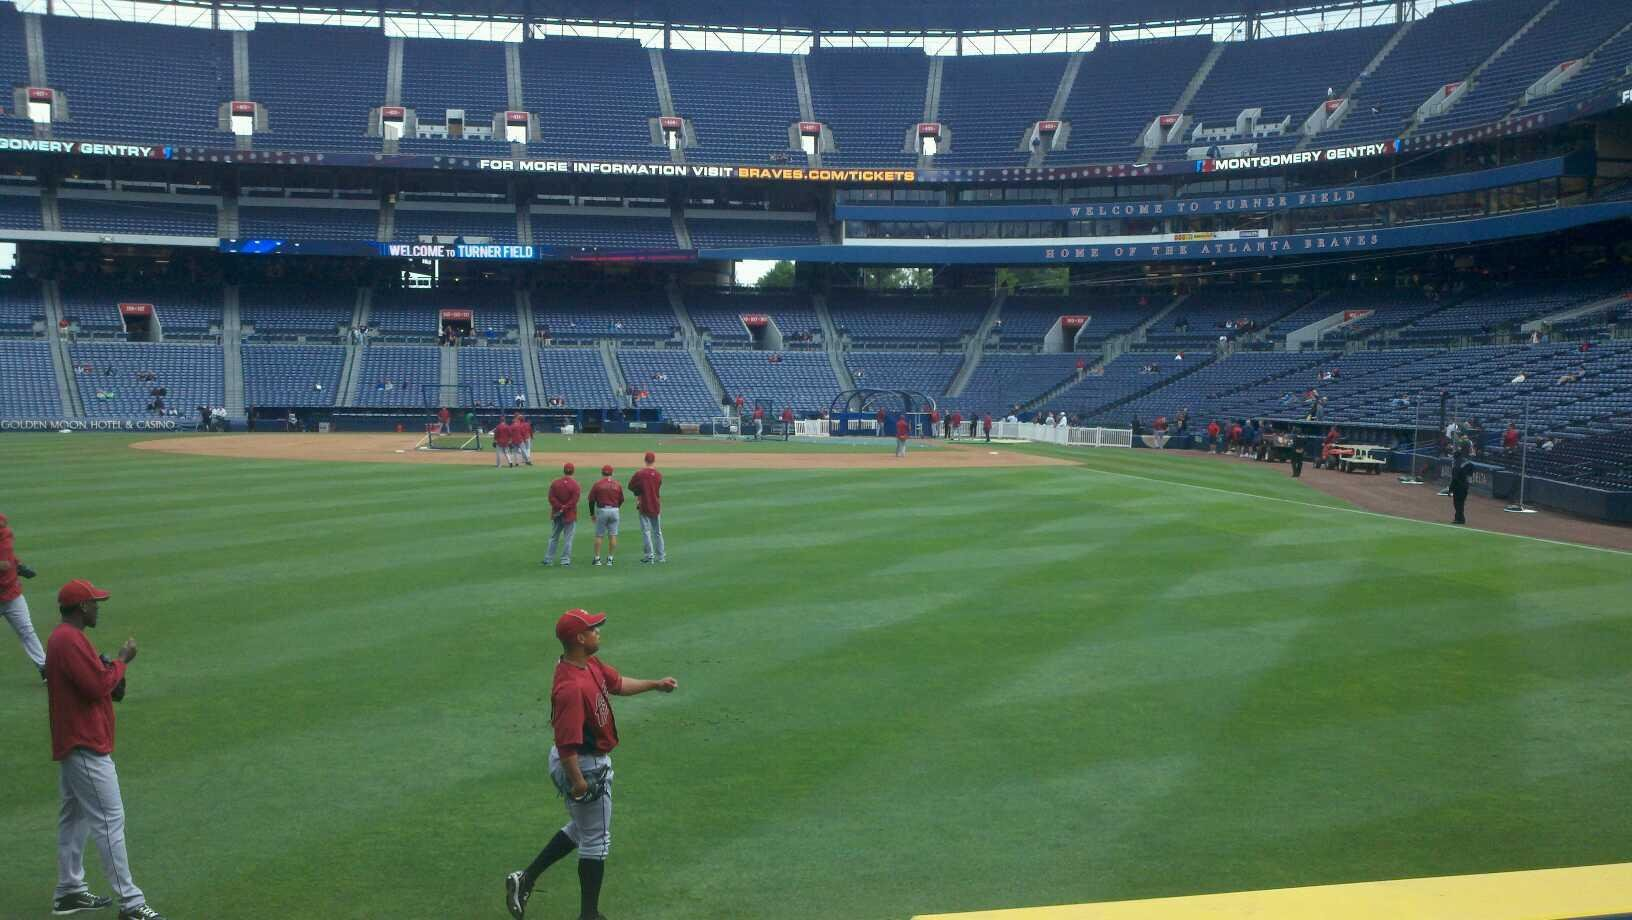 Turner Field Section 138 Row 13 Seat 6